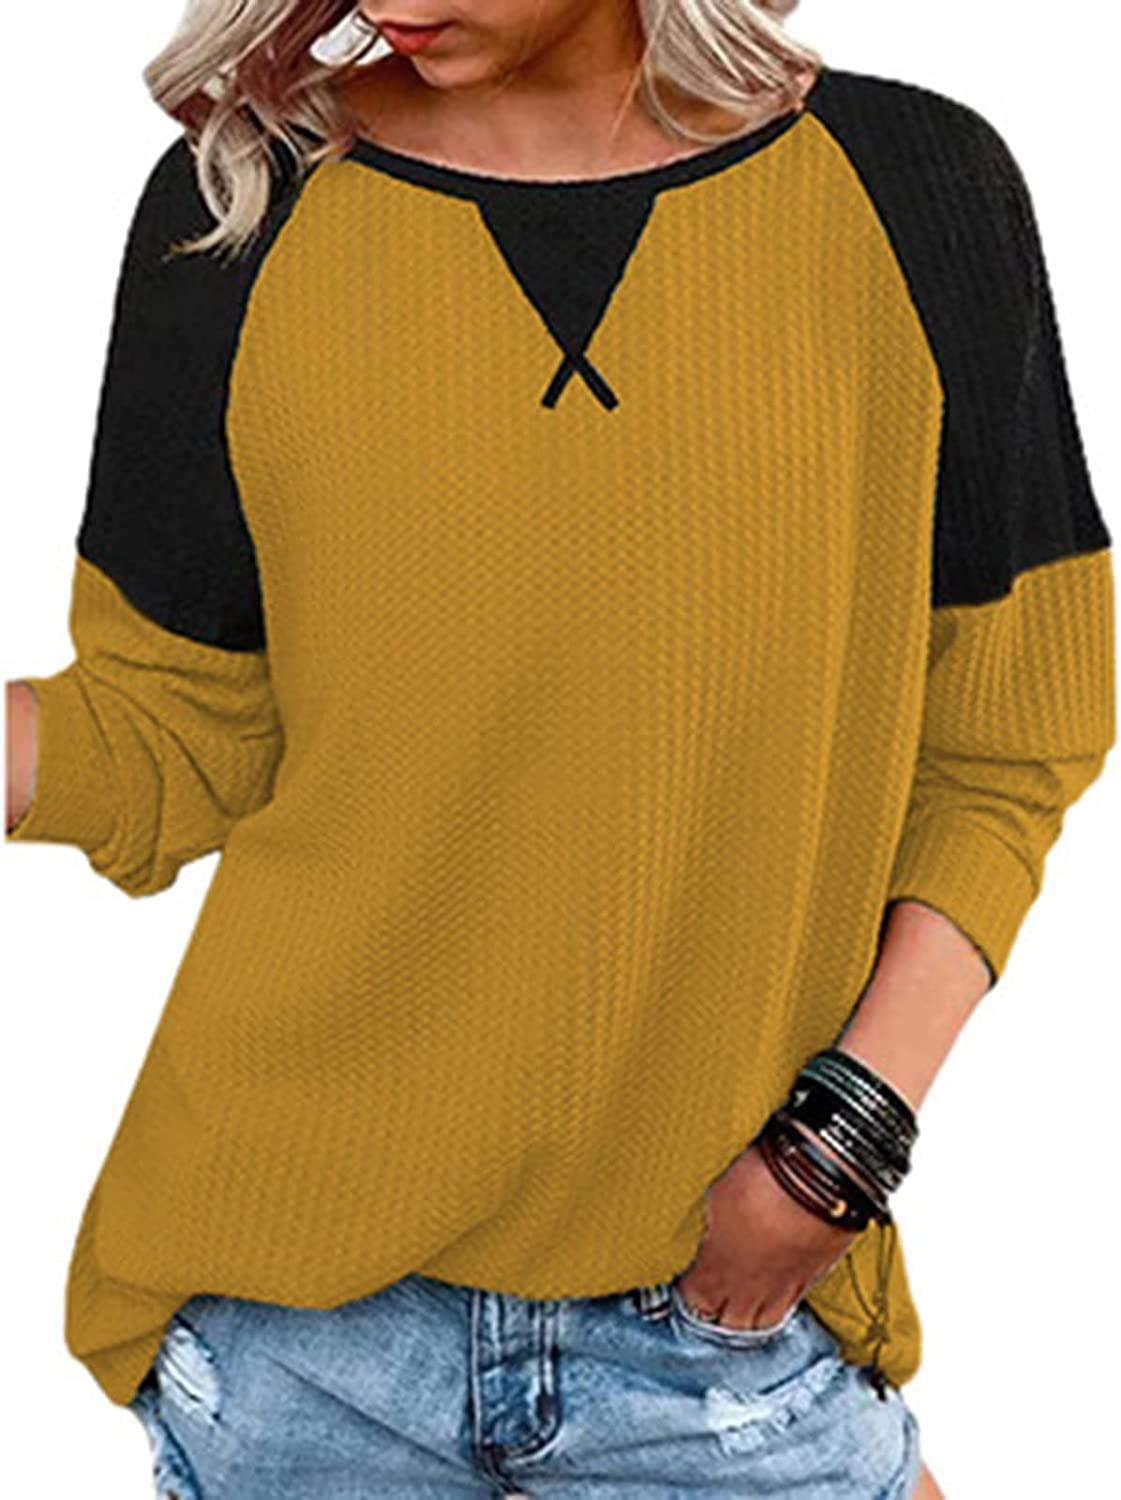 Waffle Knit Long Sleeve Shirts for Women Autumn Casual Patchwork Round Neck Fashion Tops Blouses Tee T Shirts